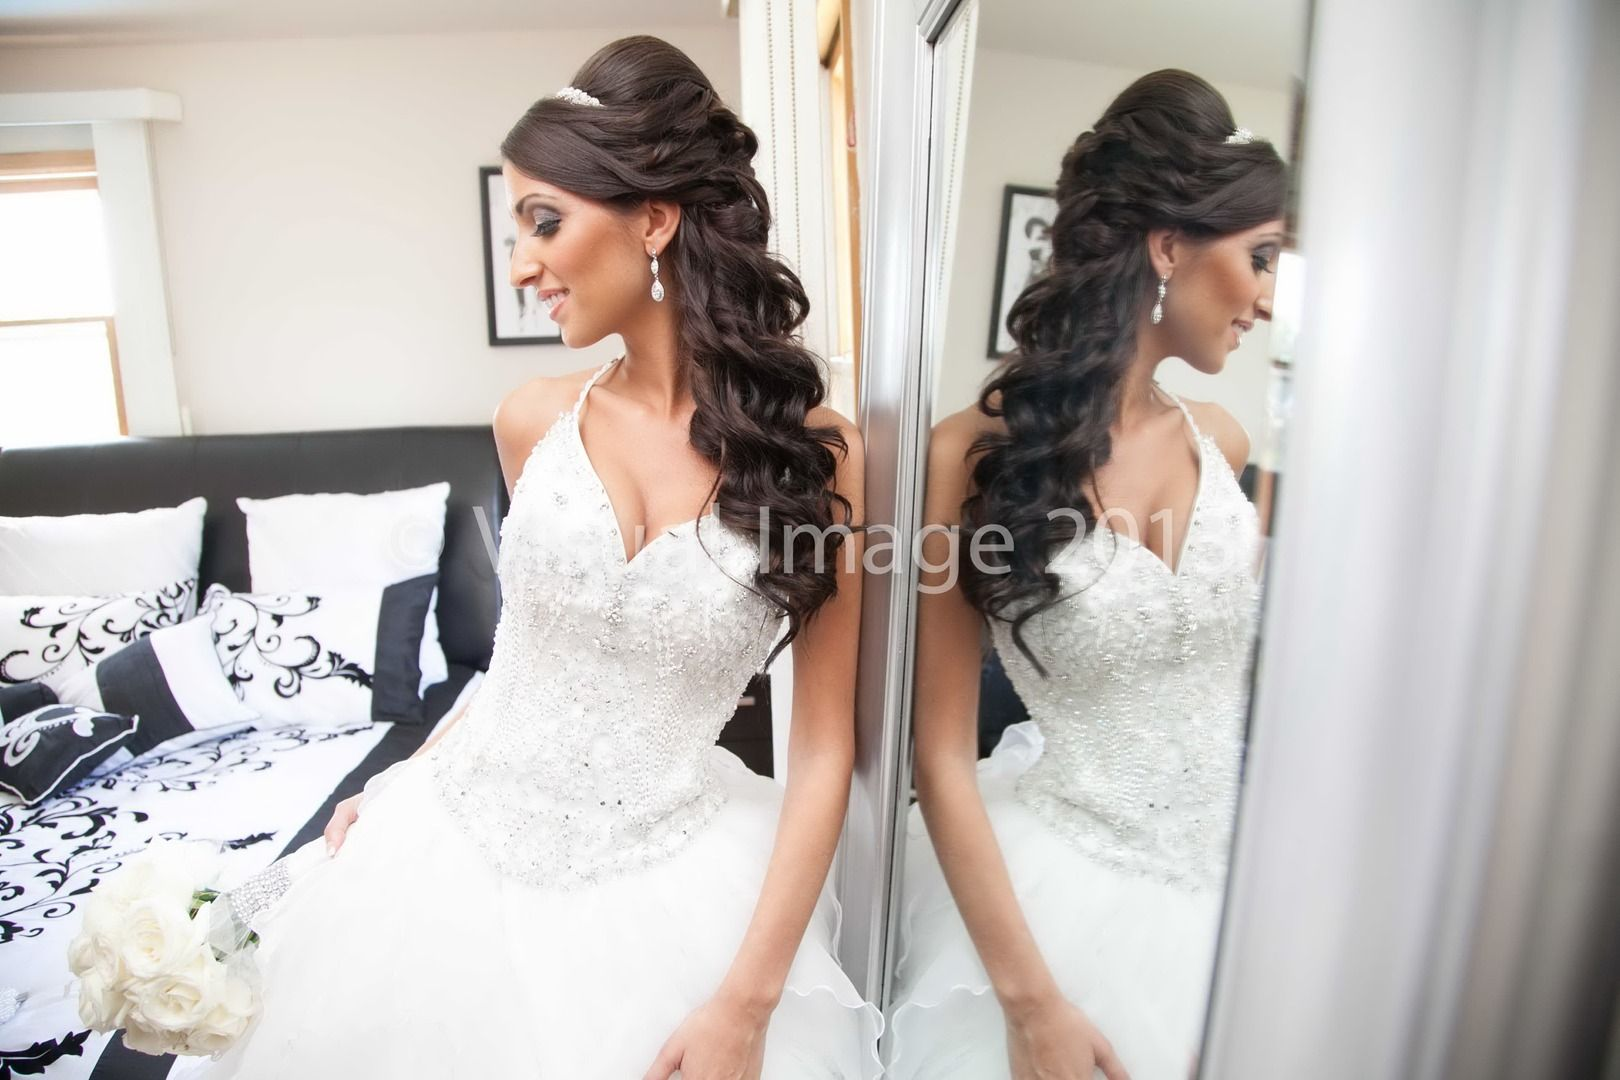 Hair & Makeup for Weddings, Productions, Commercials, Photo Shoots ...